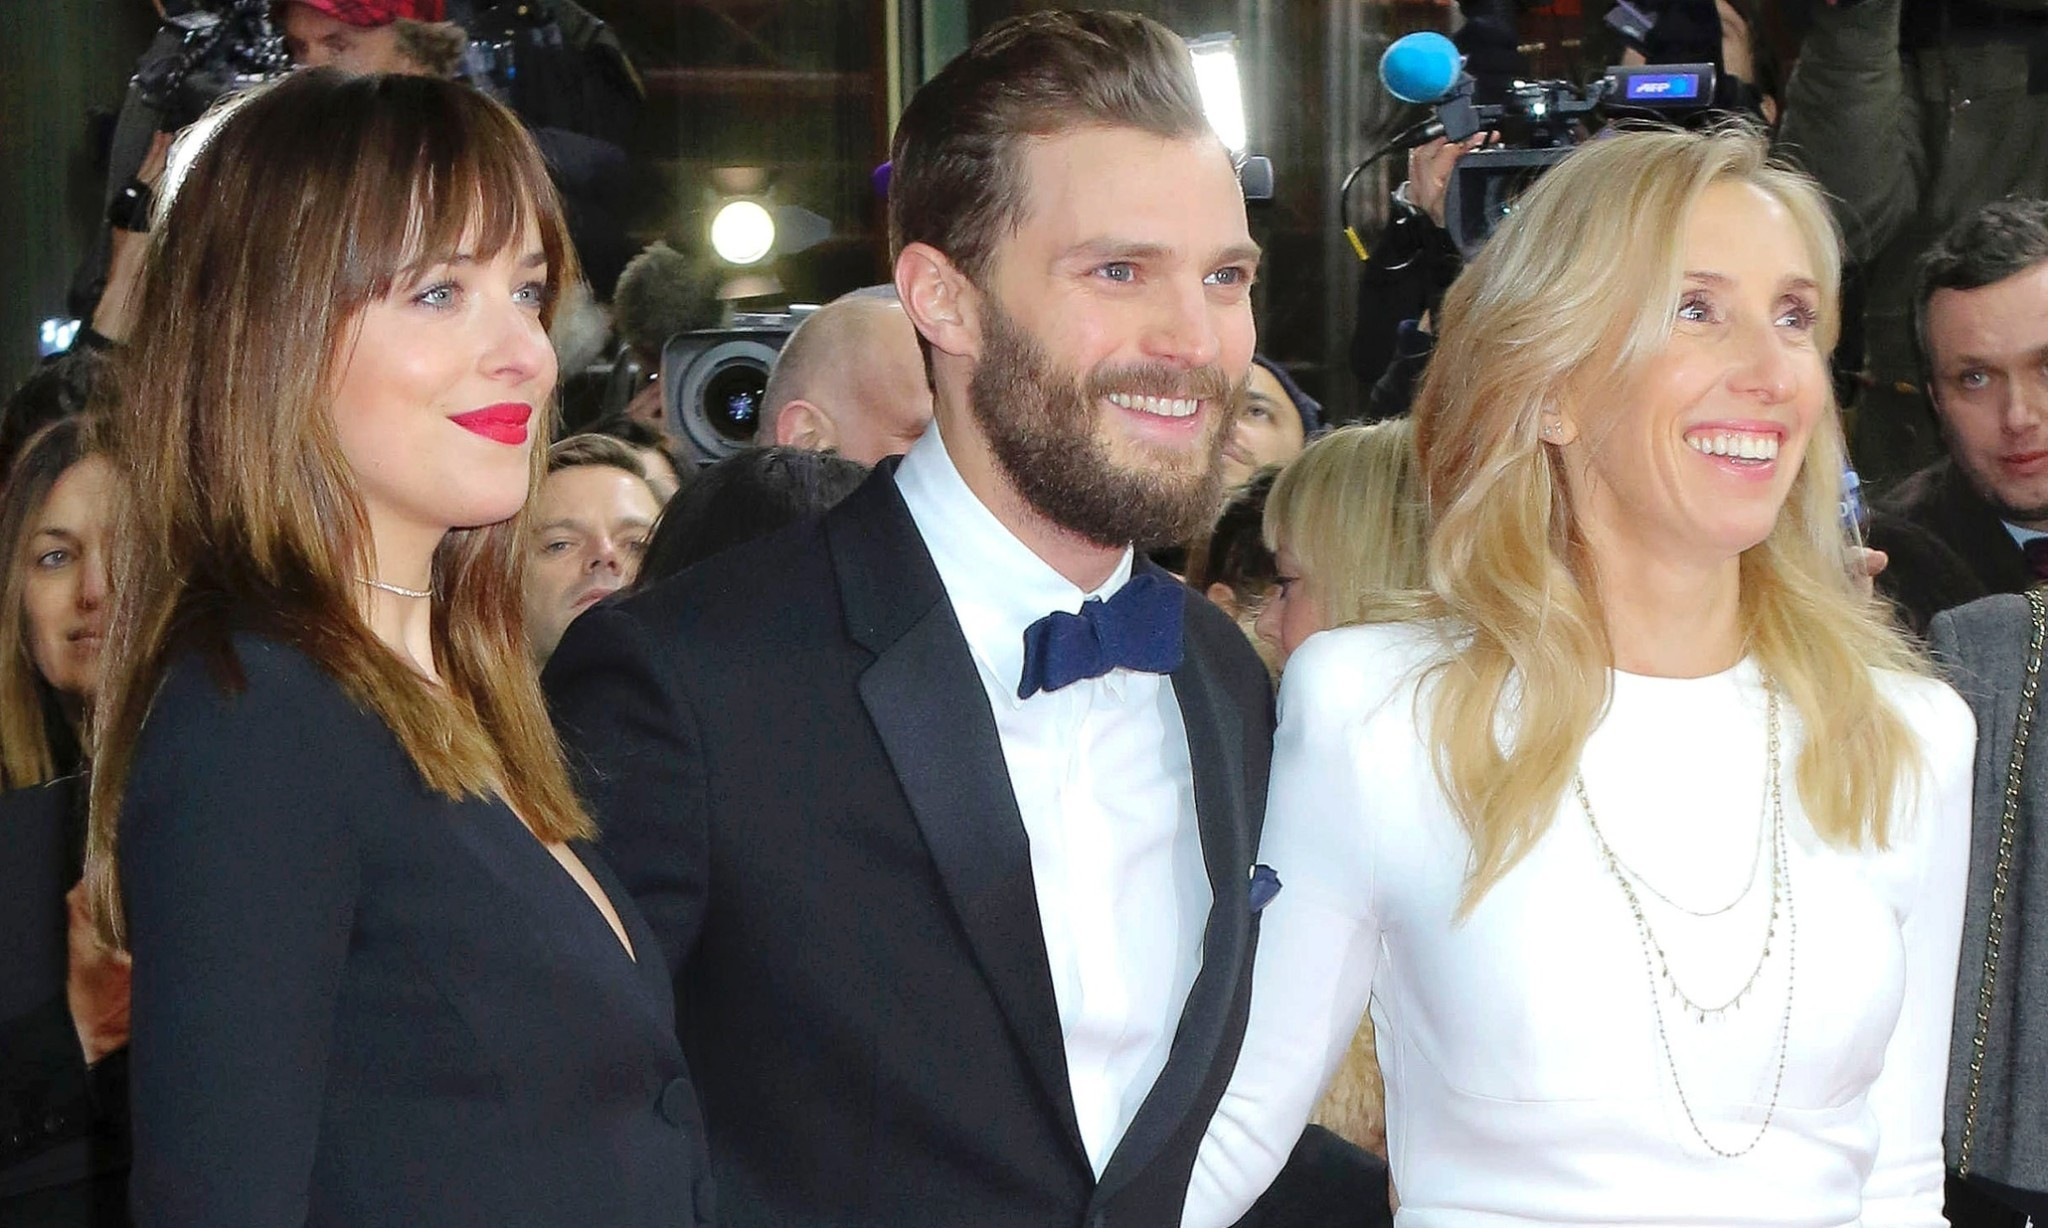 Fifty Shades of Grey 'set for $500m' after breaking US February record